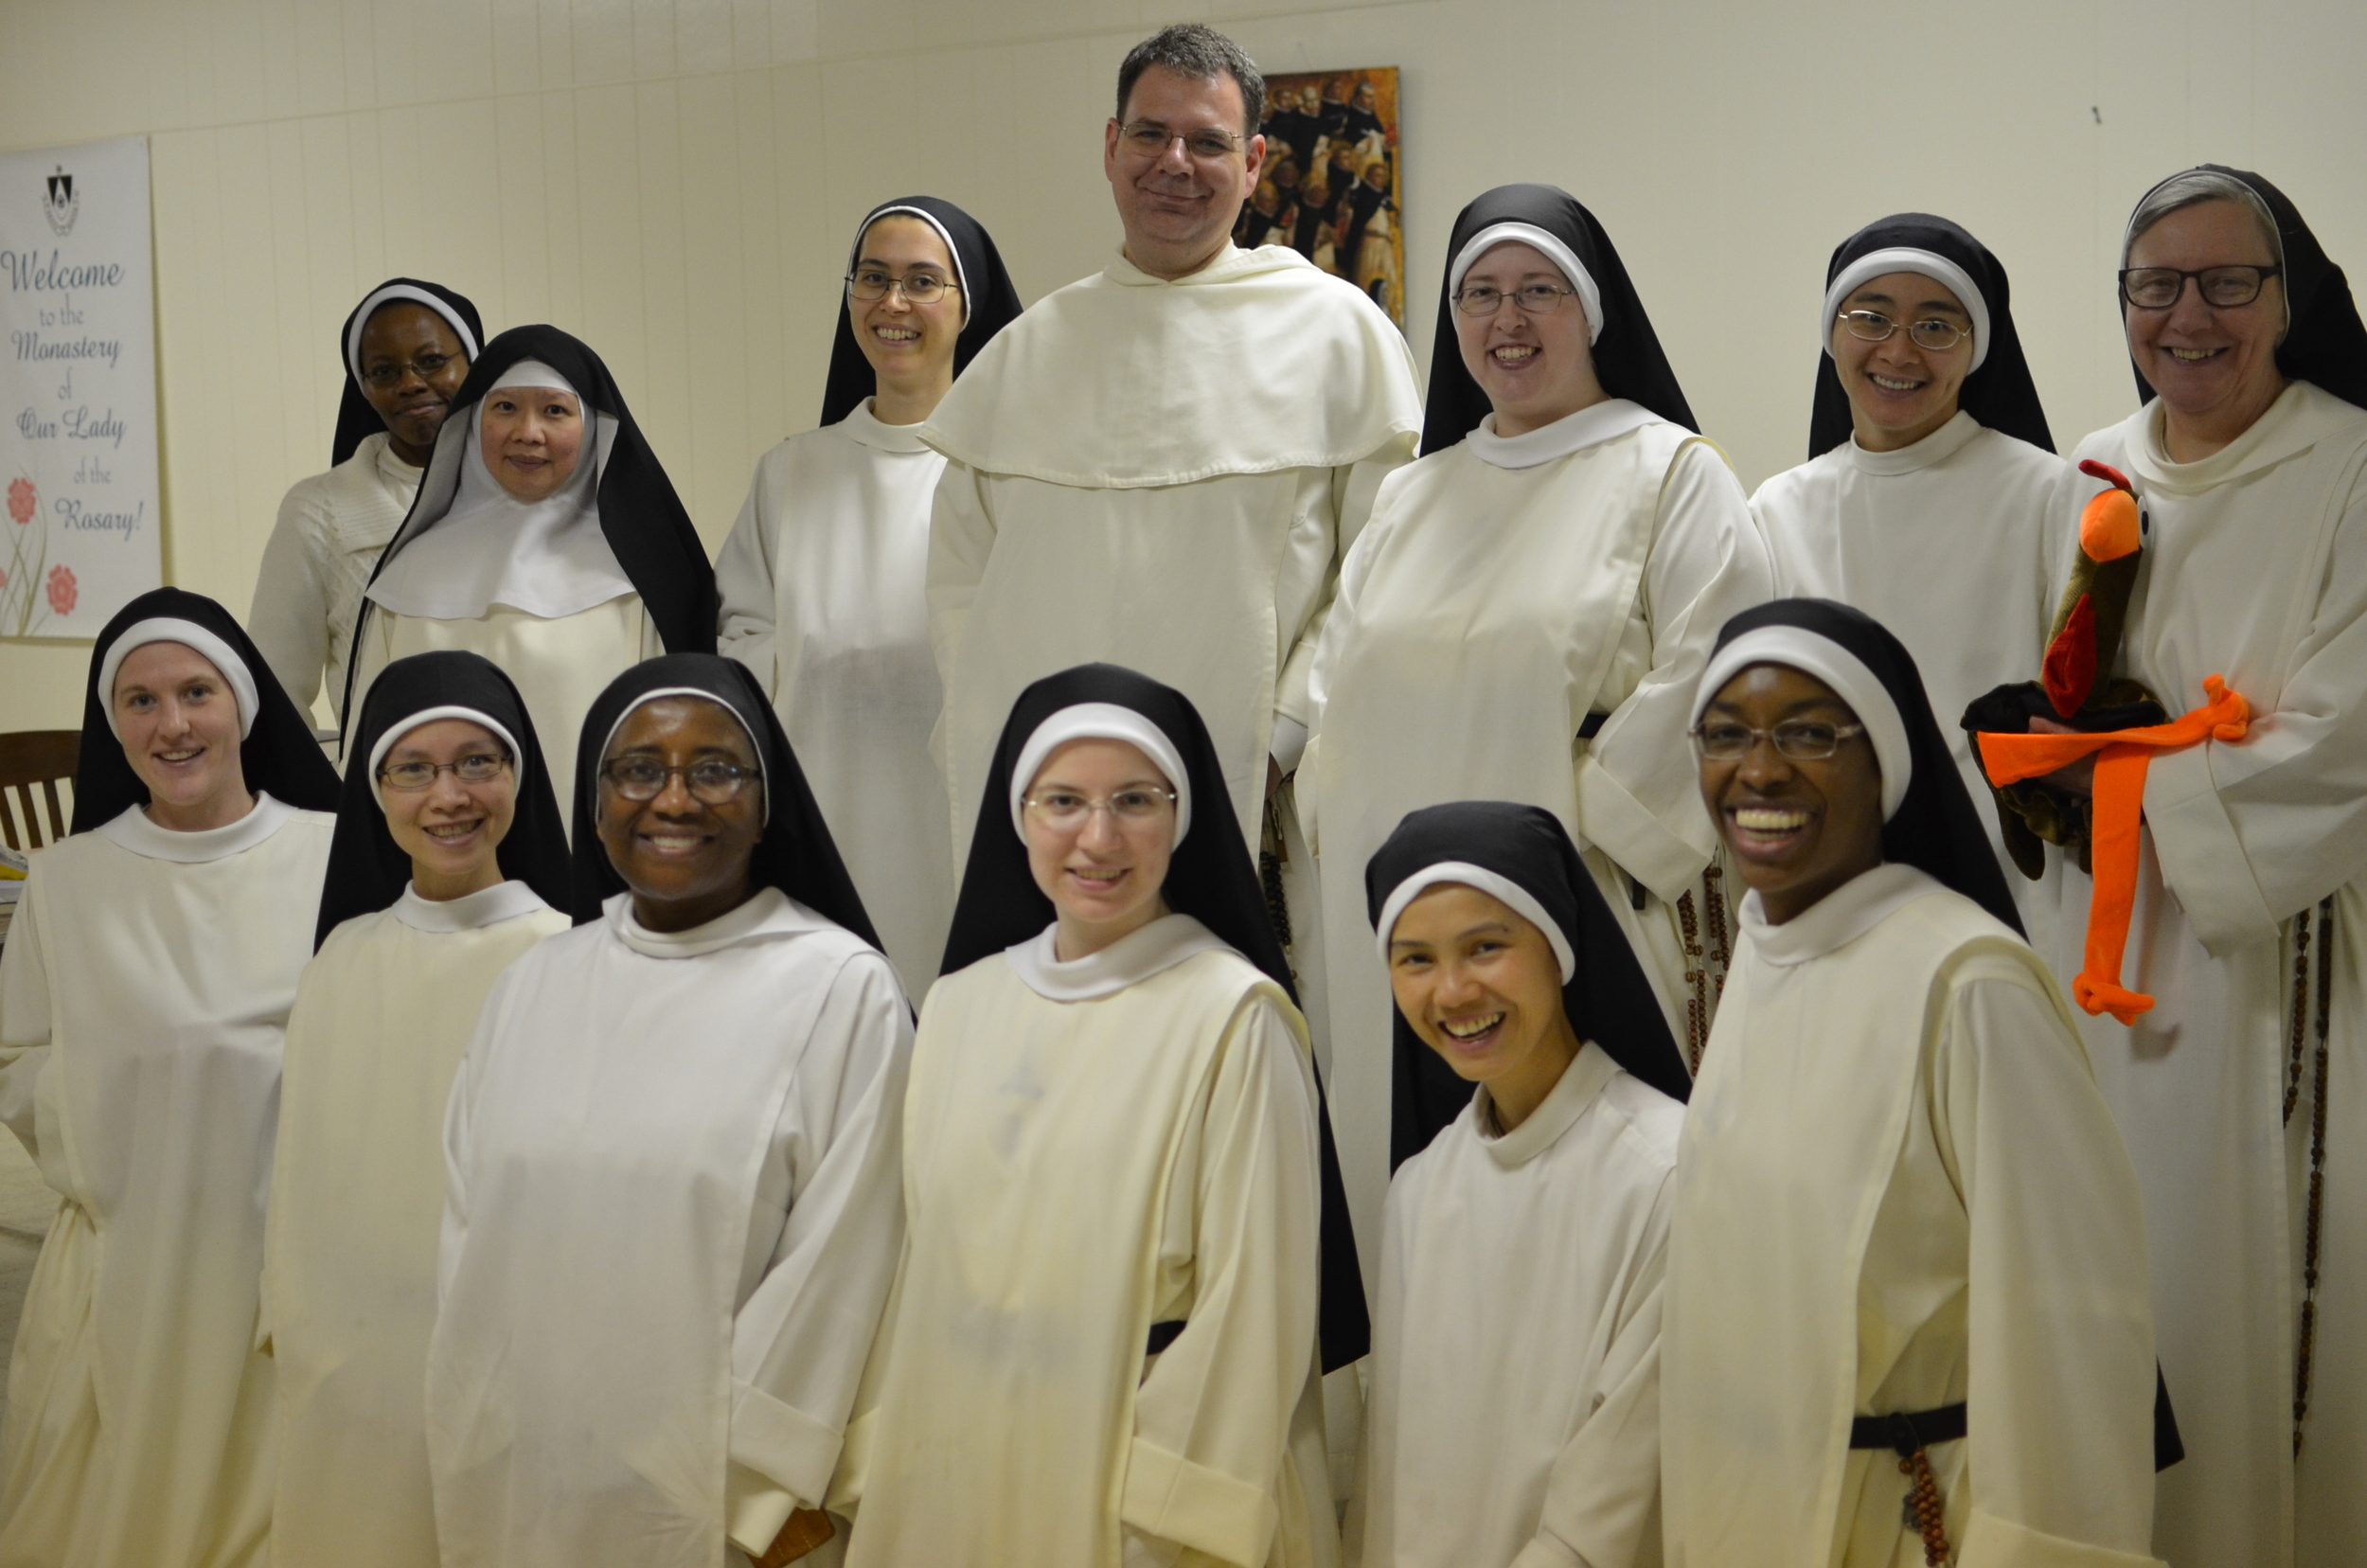 "Class photo with Fr. Andrew Hofer, OP who taught last week's course: ""Introduction to St. Thomas Aquinas"" Back row (L-R): Sr. Fransica (Nairobi, Kenya), Sr. Mary Isabel (Menlo Park, CA), Sr. Dominic Marie (Farmington Hills, MI), Fr. Andrew Hofer, Sr. Mary Cecilia (Summit), Sr. Mary Austin (Los Angelos, CA), Sr. Clara Marie with the class's mascot (Farmington  Hills, MI) Front row (L-R): Sr. Mary Magdalene (Summit), Sr. Marie Therese (Farmington Hills, MI), Sr. Maria of Jesus (Farmington Hills, MI), Sr. Mary Veronica (Summit), Sr. Mary of the Angels (Los Angelos, CA), and Sr. Mary Jacinta (Summit)."